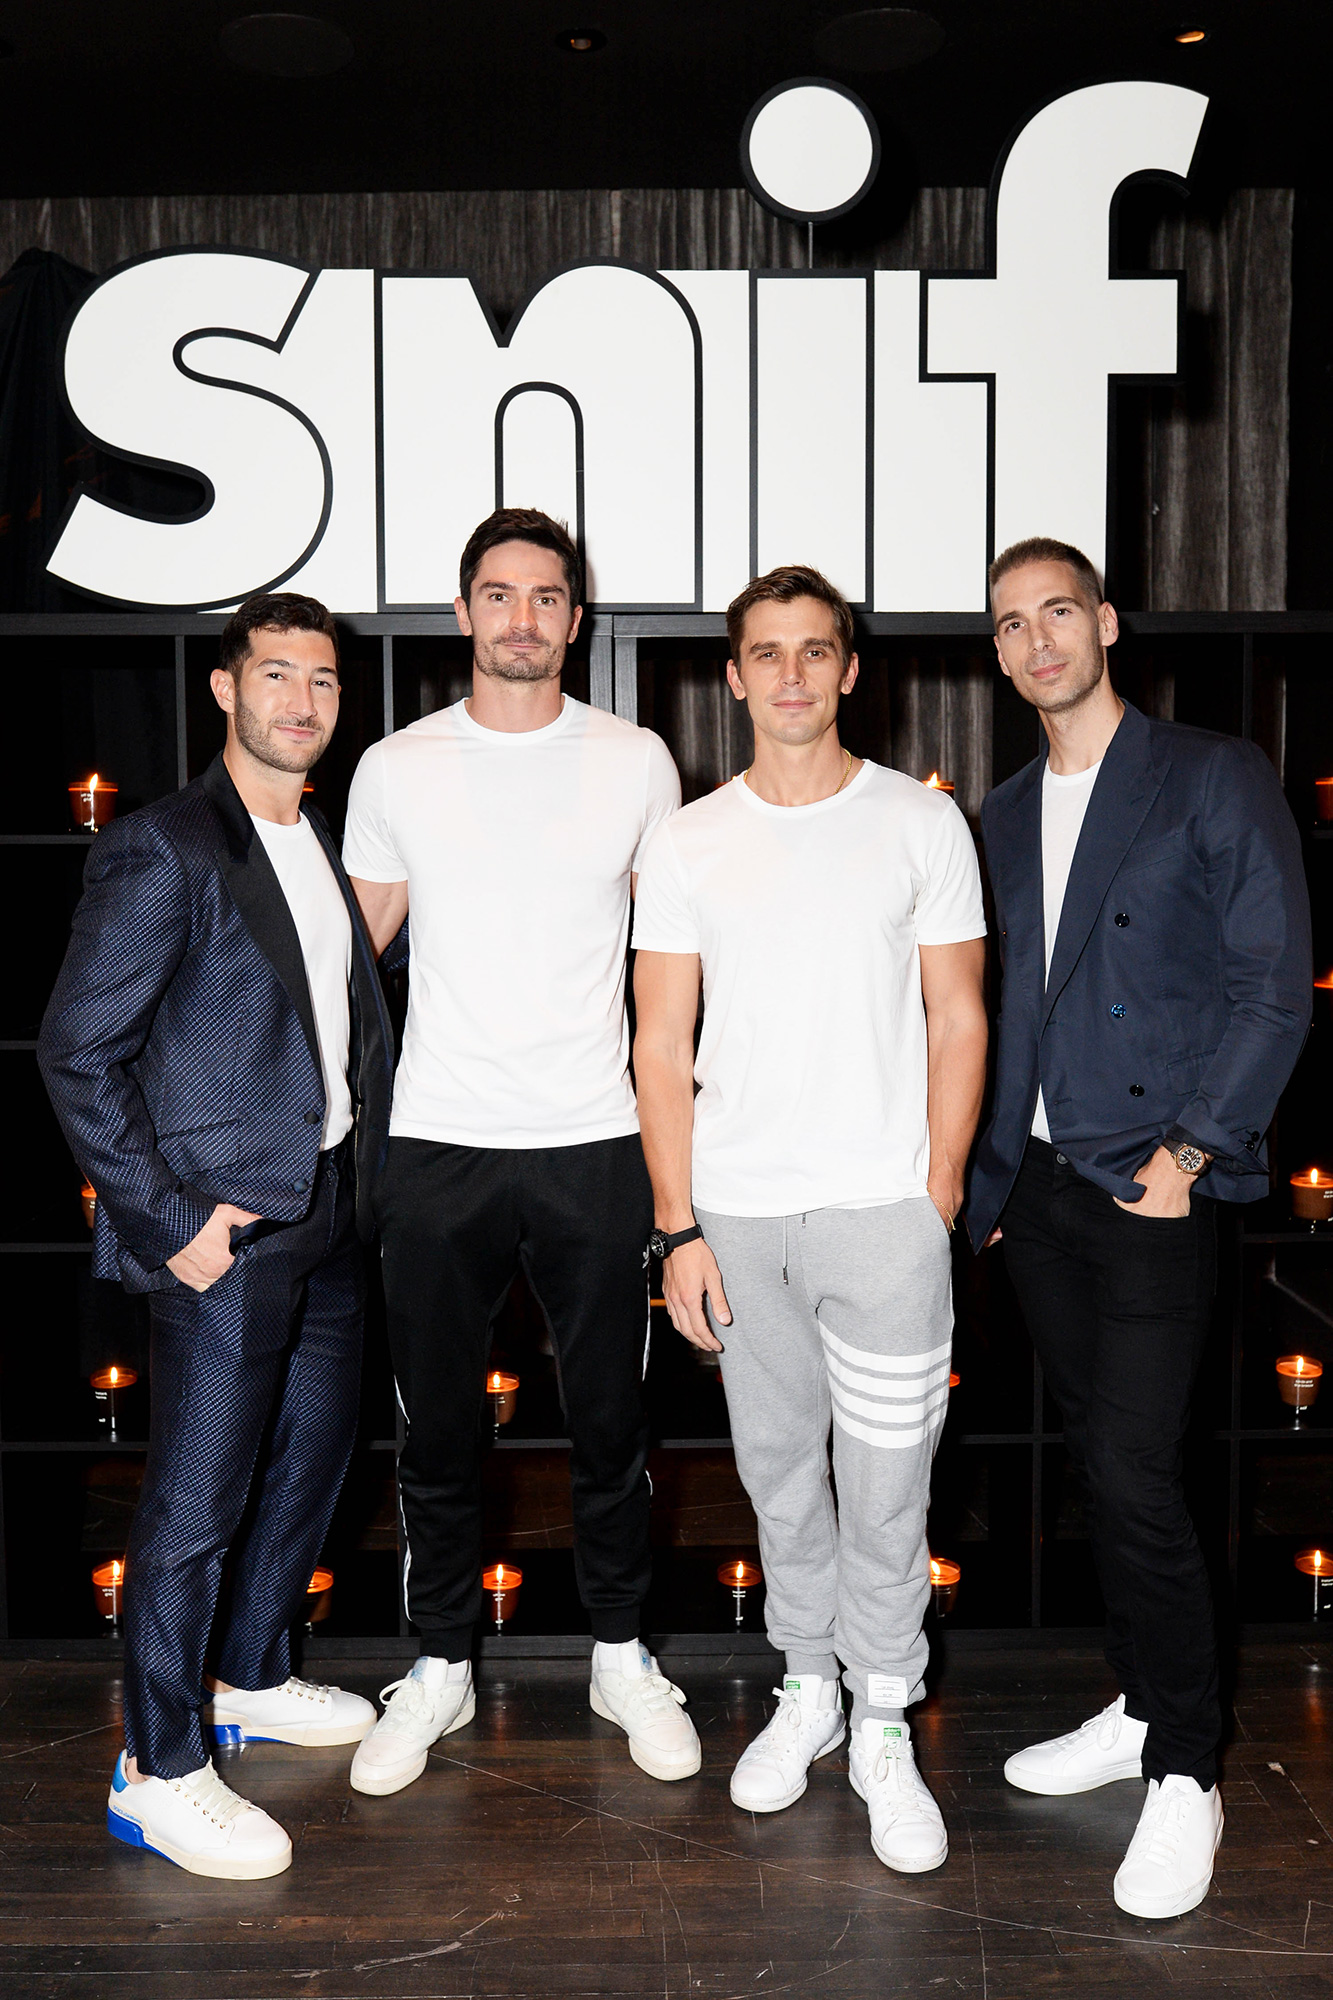 Antoni Porowski and his boyfriend Kevin Harrington with Simon Huck and his soon-to-be husband Phil Riportella at the Snif candle launch at Zero Bond in NYC